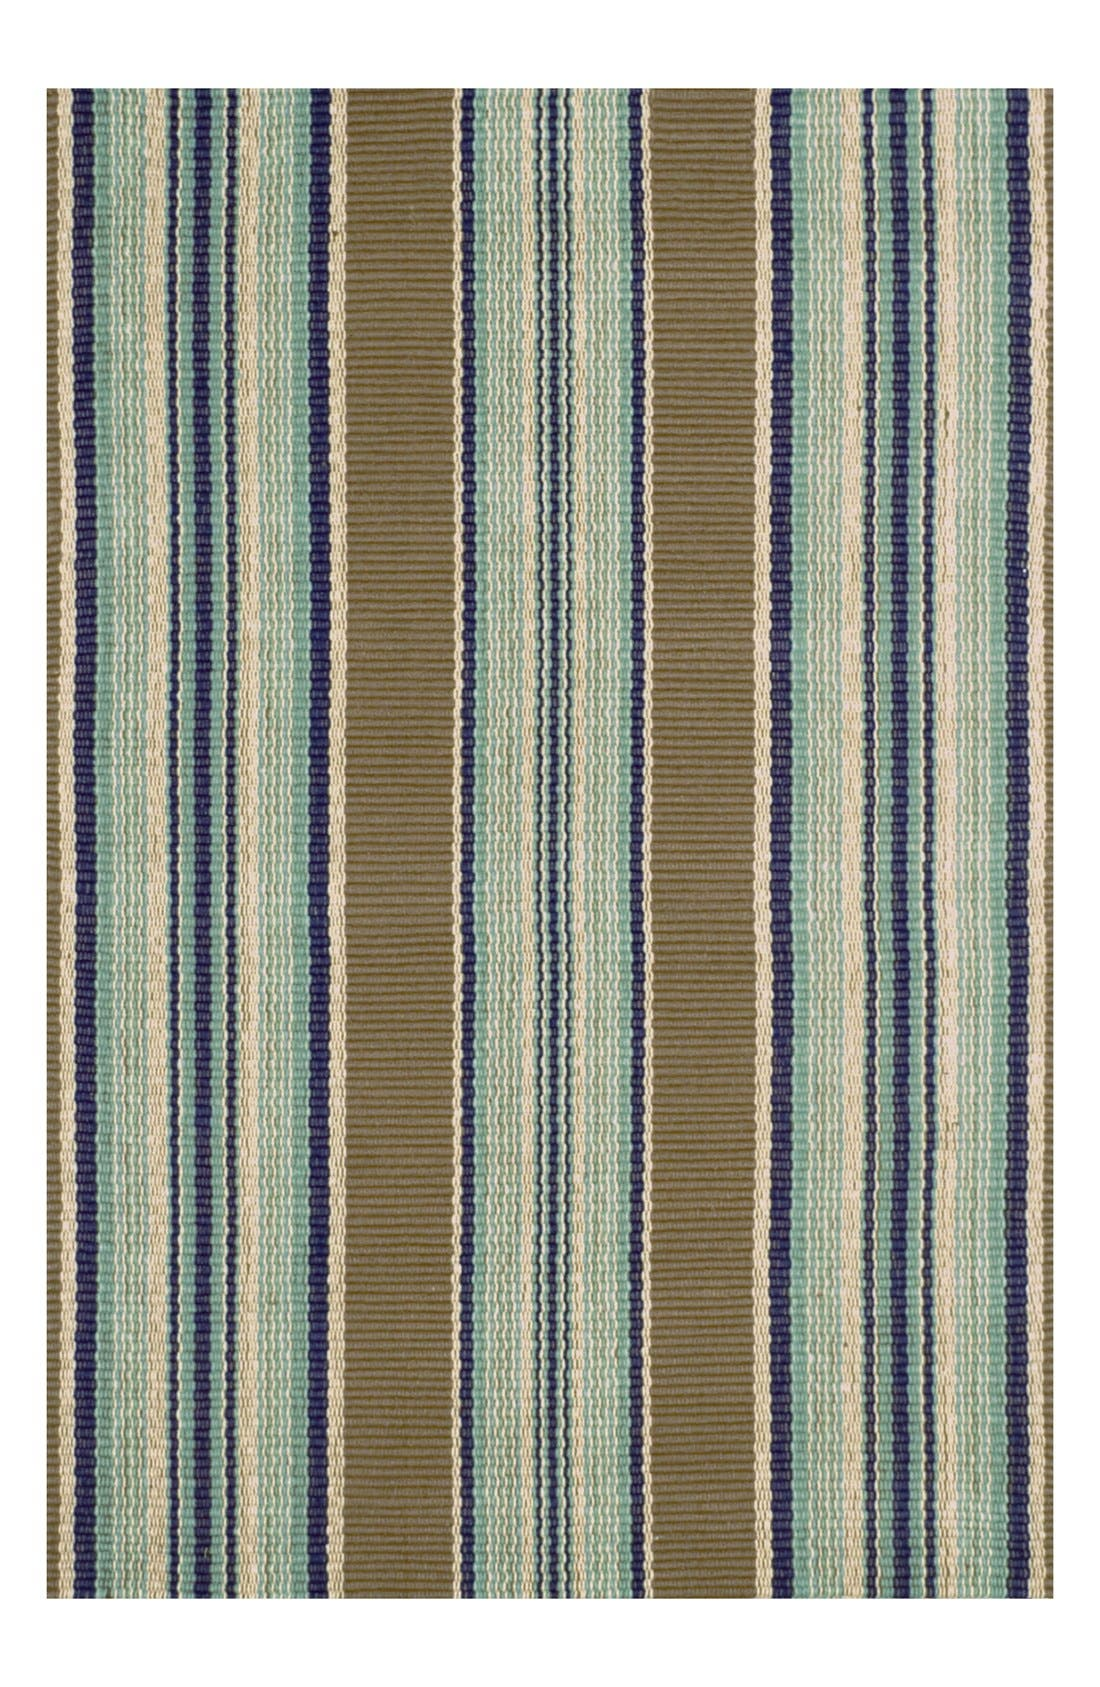 Blue Heron Stripe Cotton Rug,                             Main thumbnail 1, color,                             BLUE/ MULTI